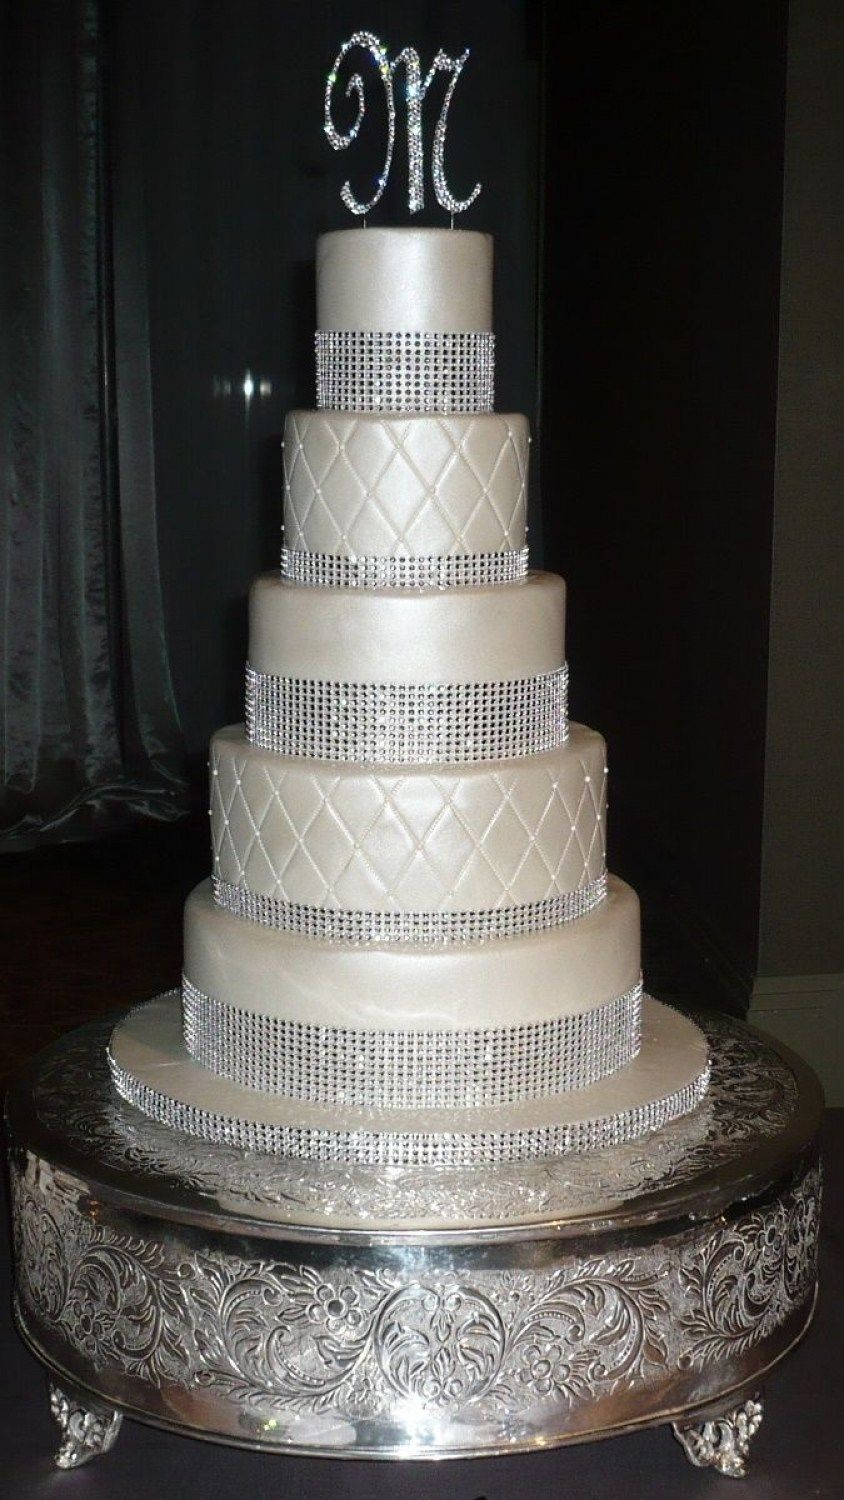 279 Best Wedding Cakes Bling Images On Pinterest Marriage In